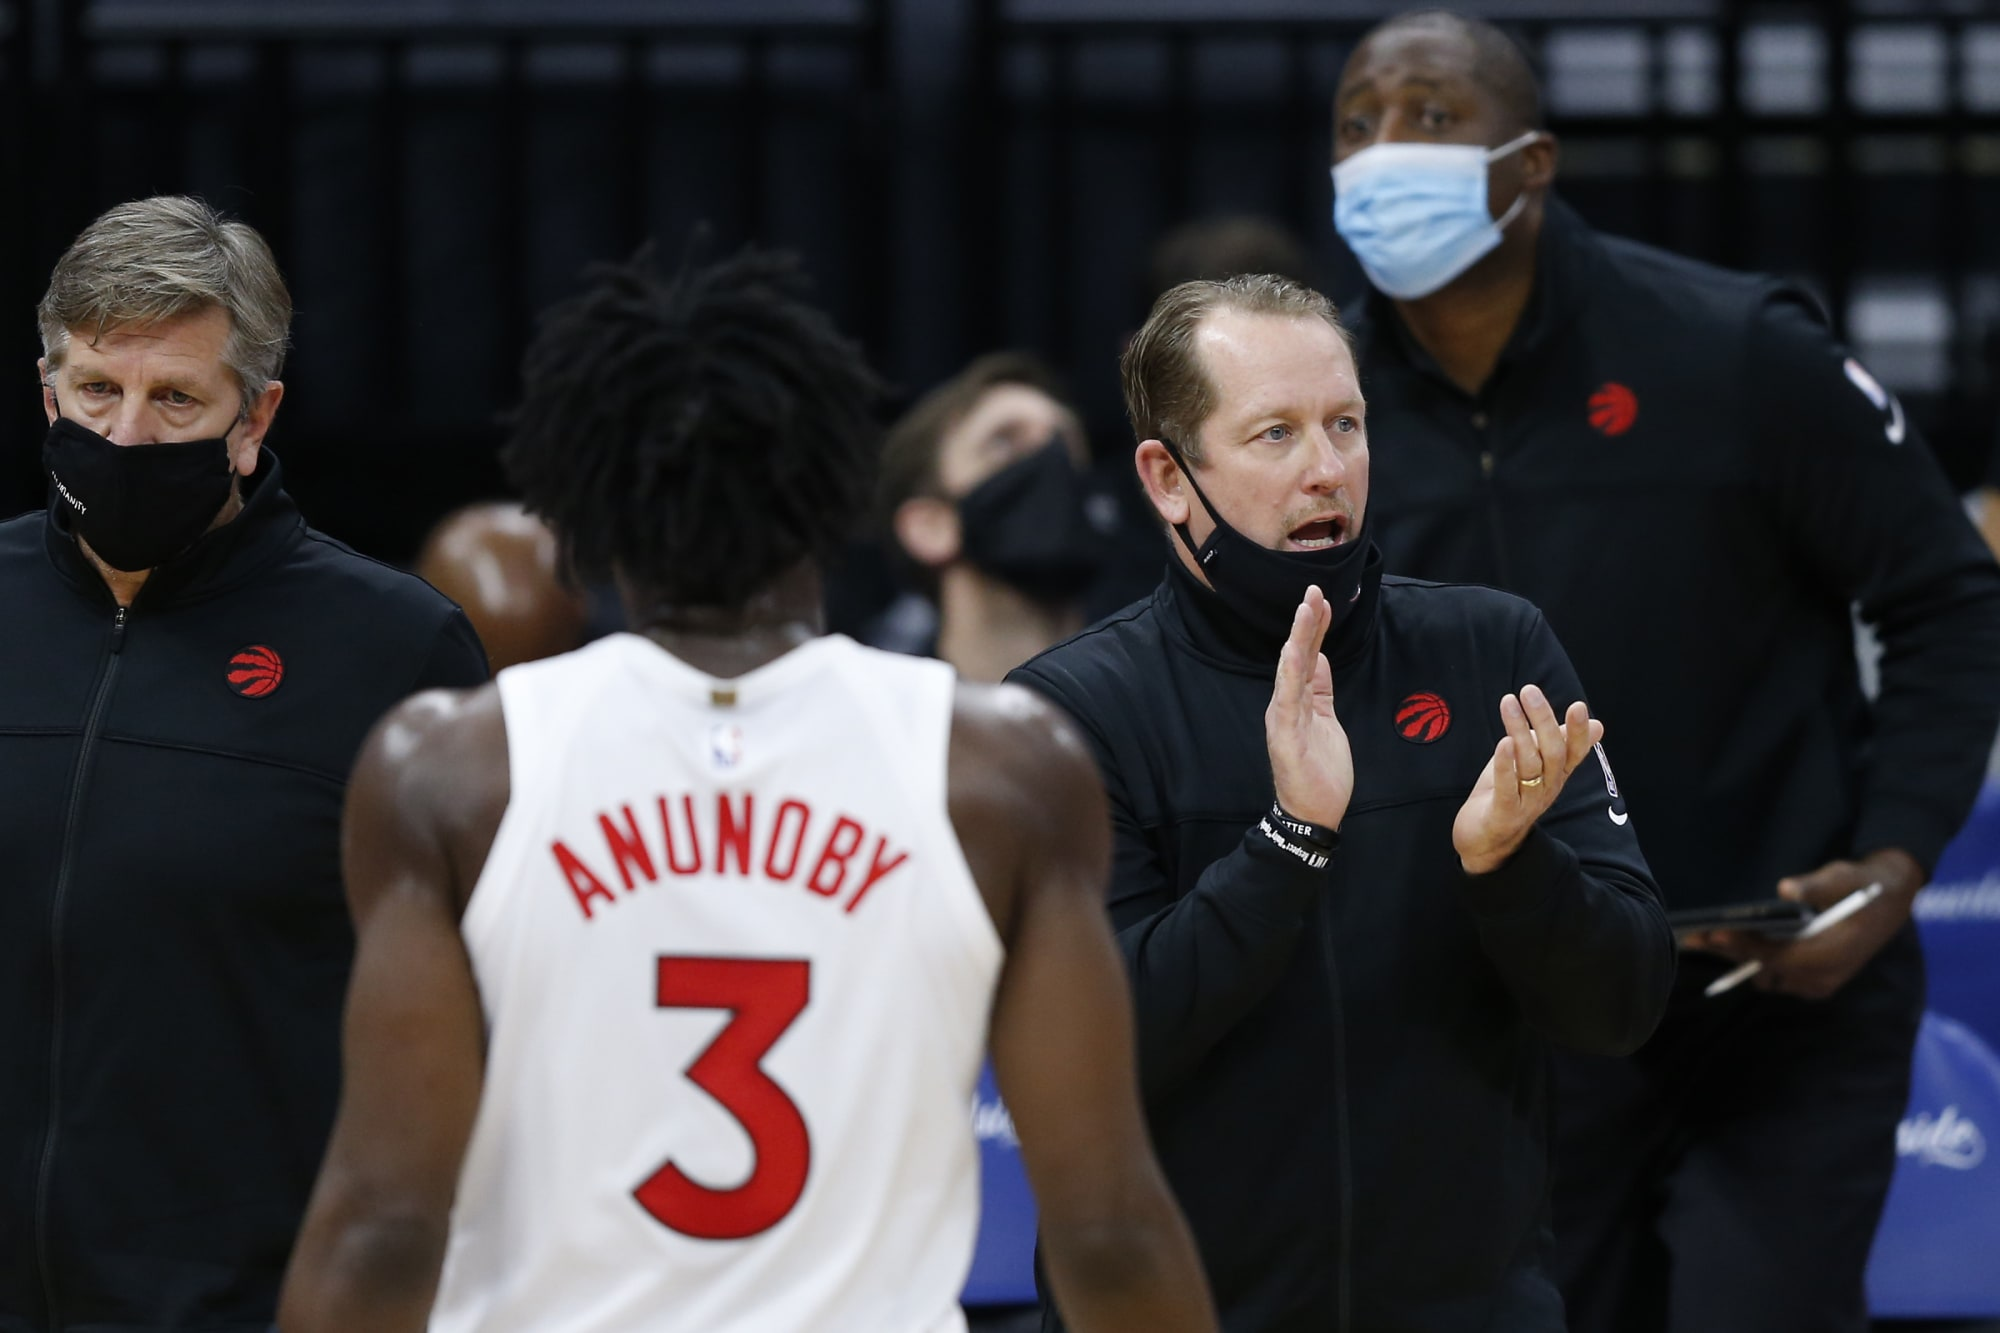 Raptors: The 2 best lineups Nick Nurse needs to use more often